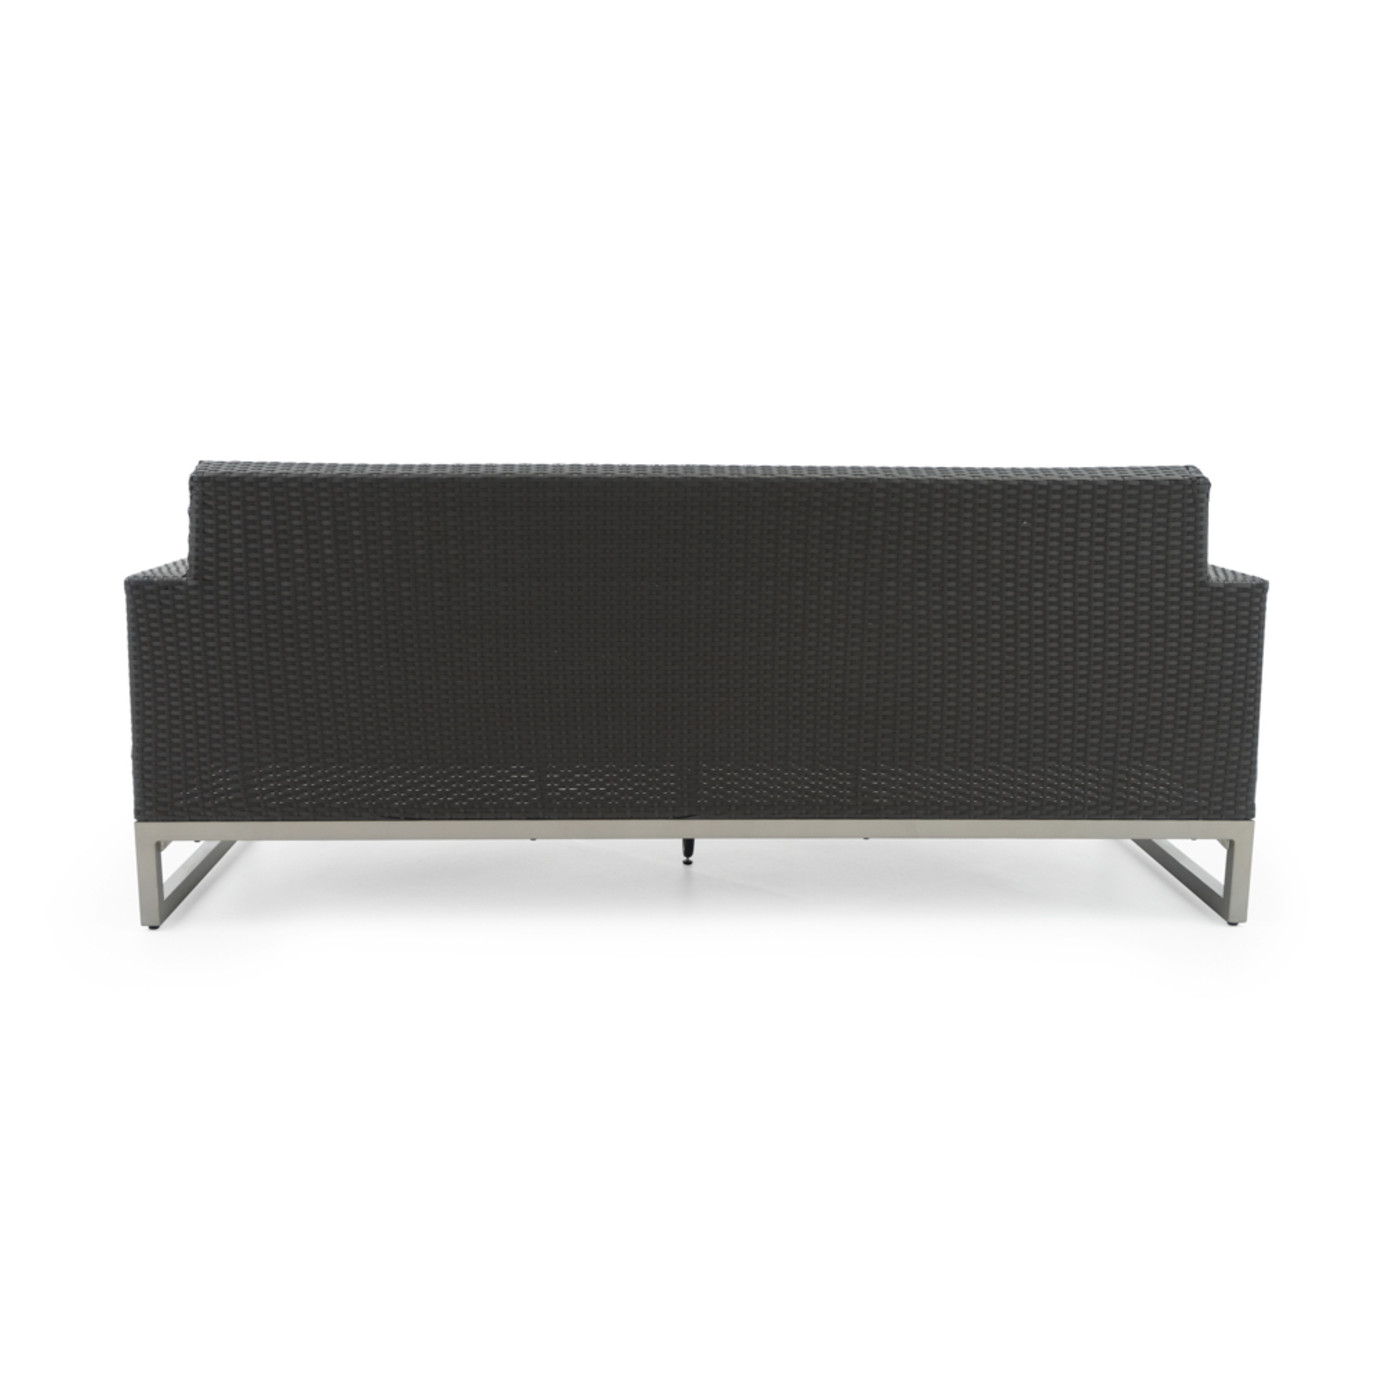 Milo™ Espresso 78in Sofa - Charcoal Gray